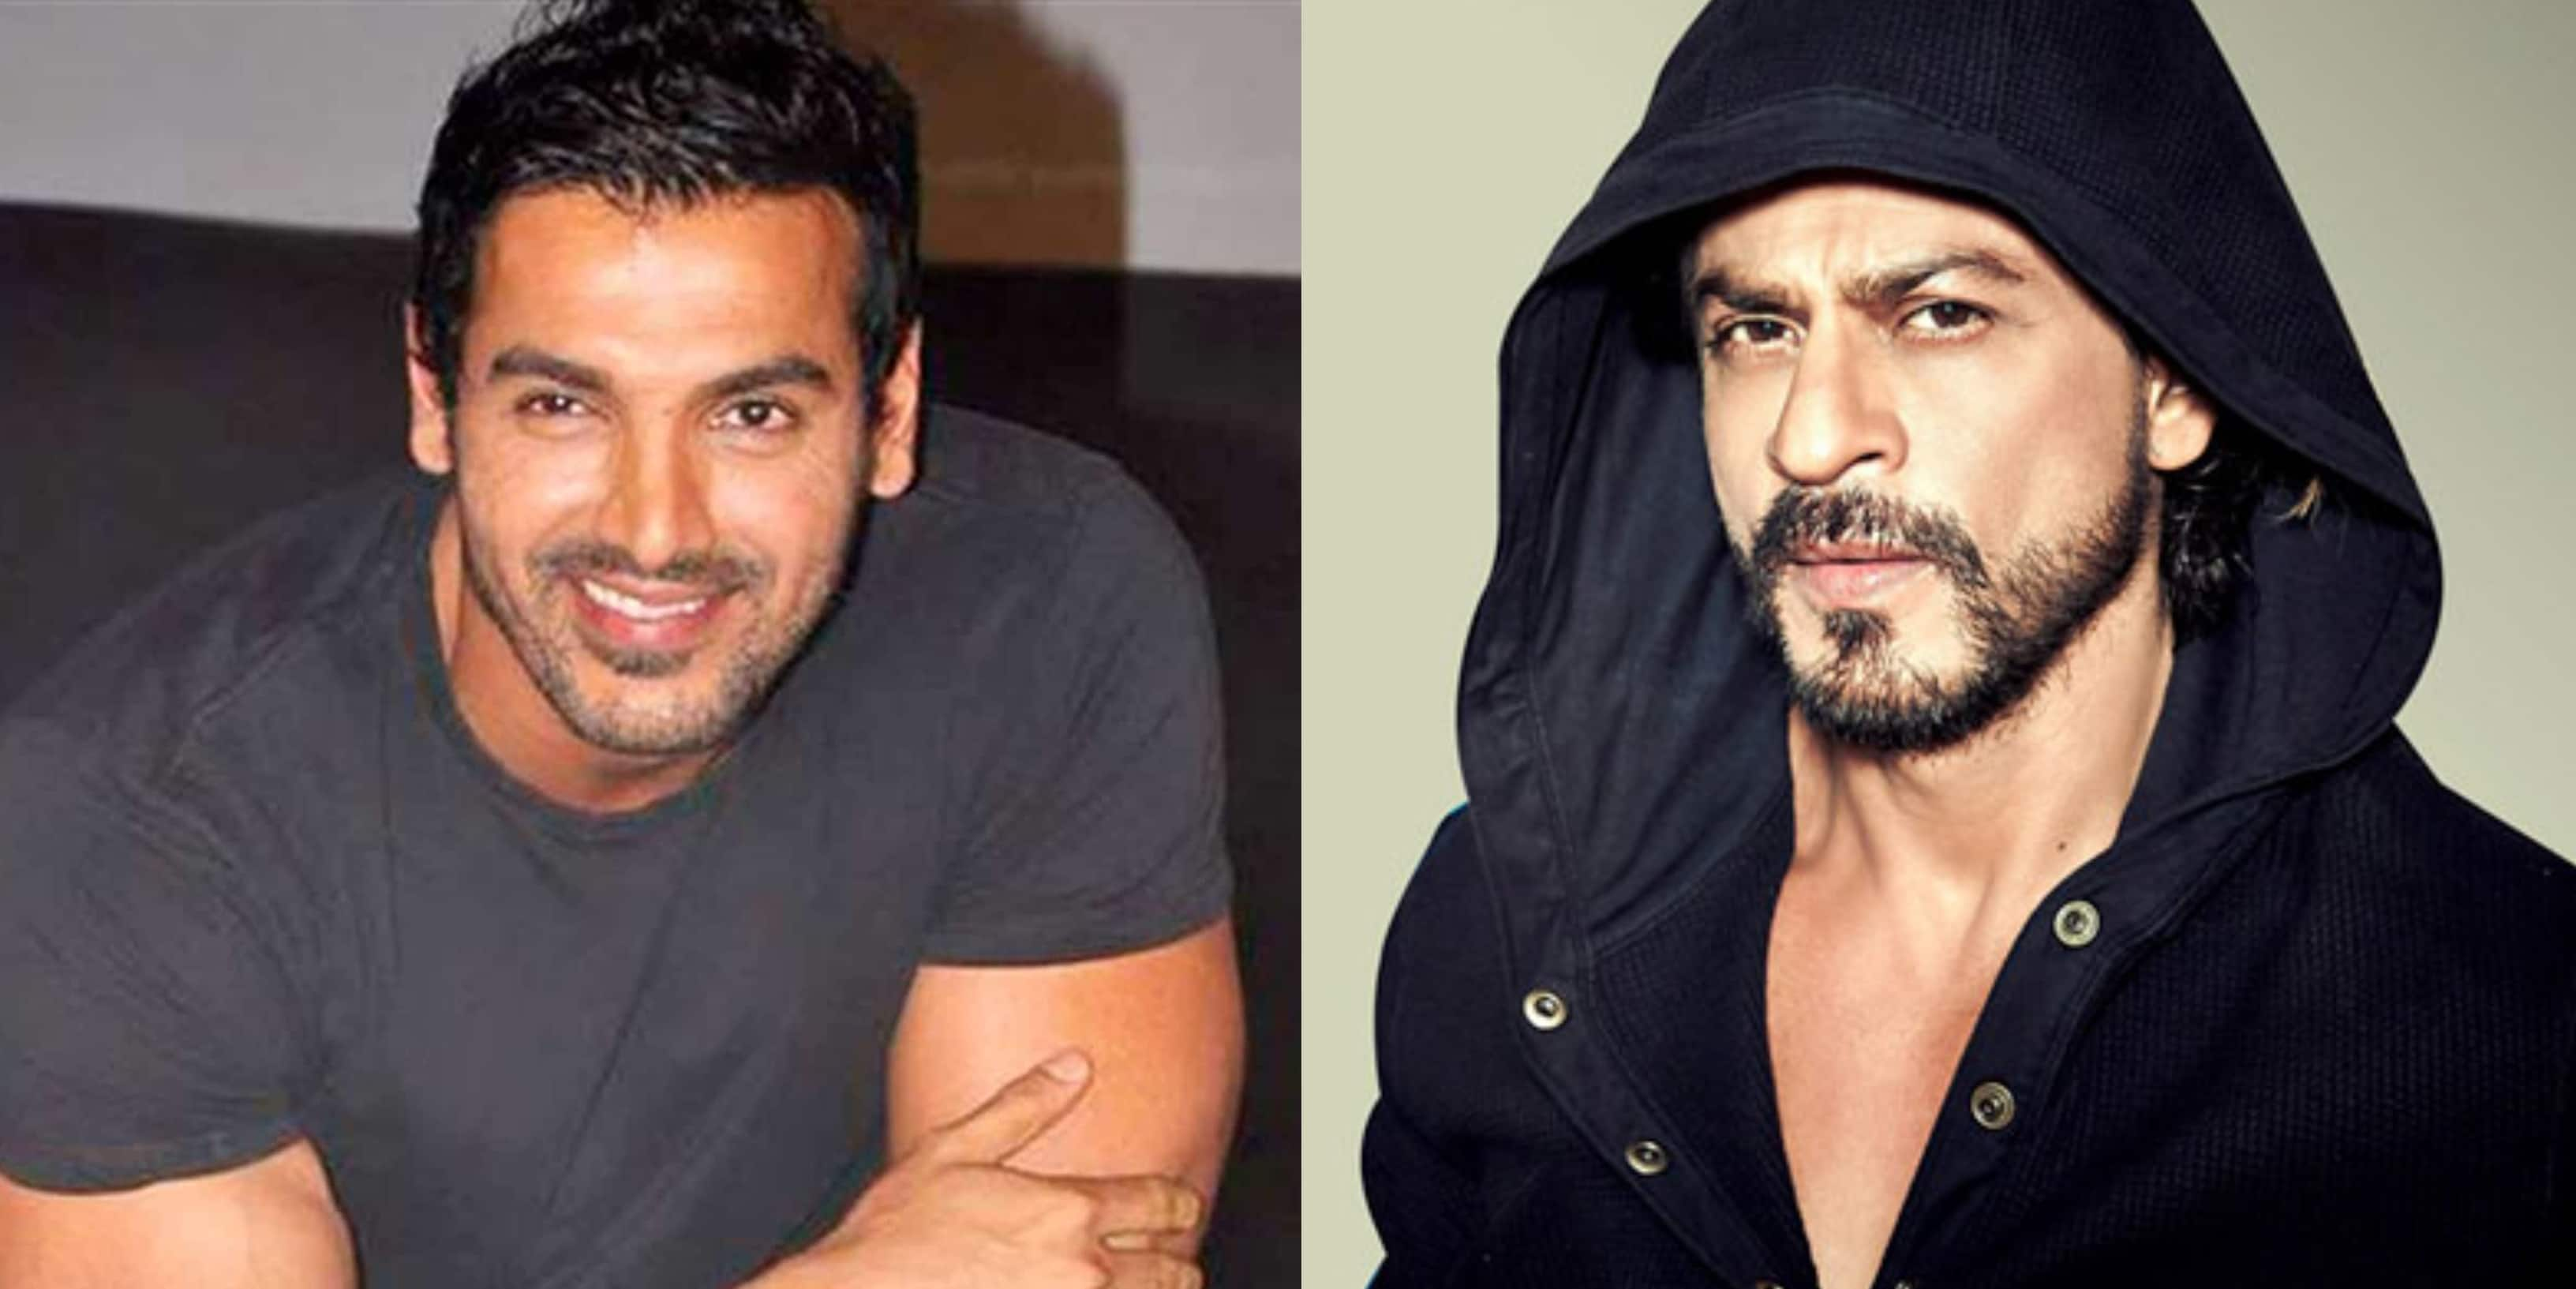 Pathan: John Abraham And Siddharth Anand's Snap From The Set Goes Viral On Social Media